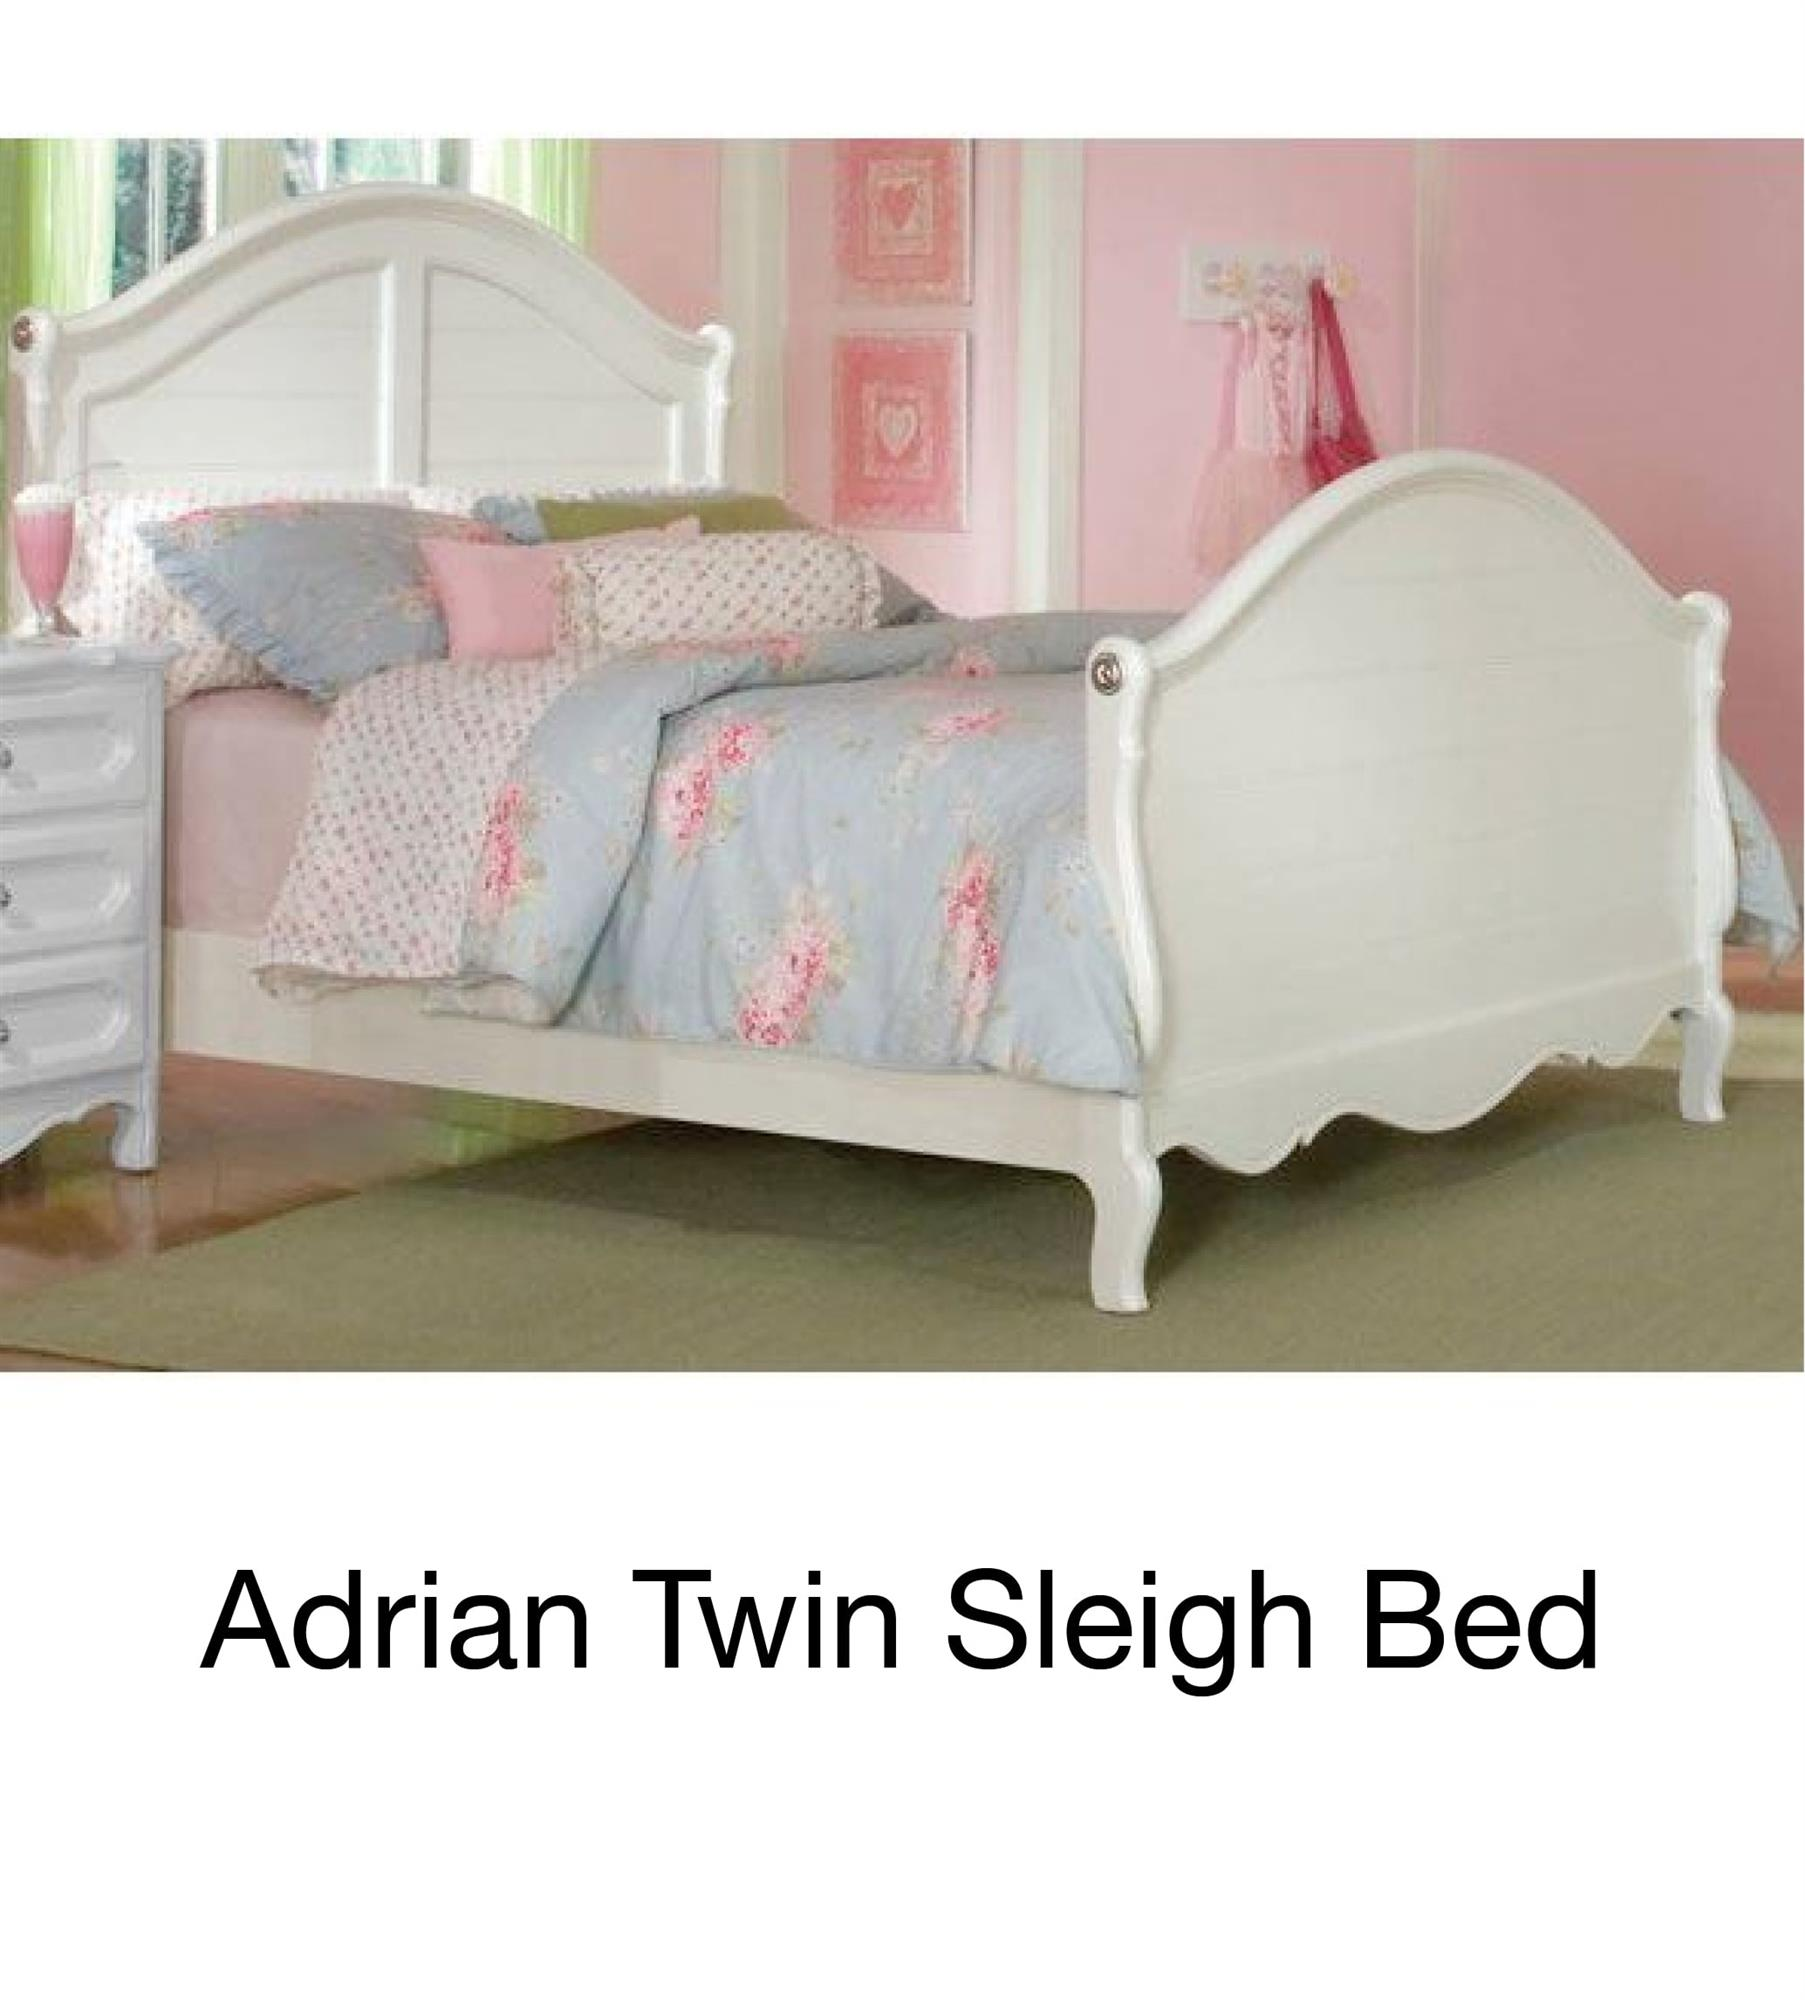 Adrian Twin Sleigh Bed